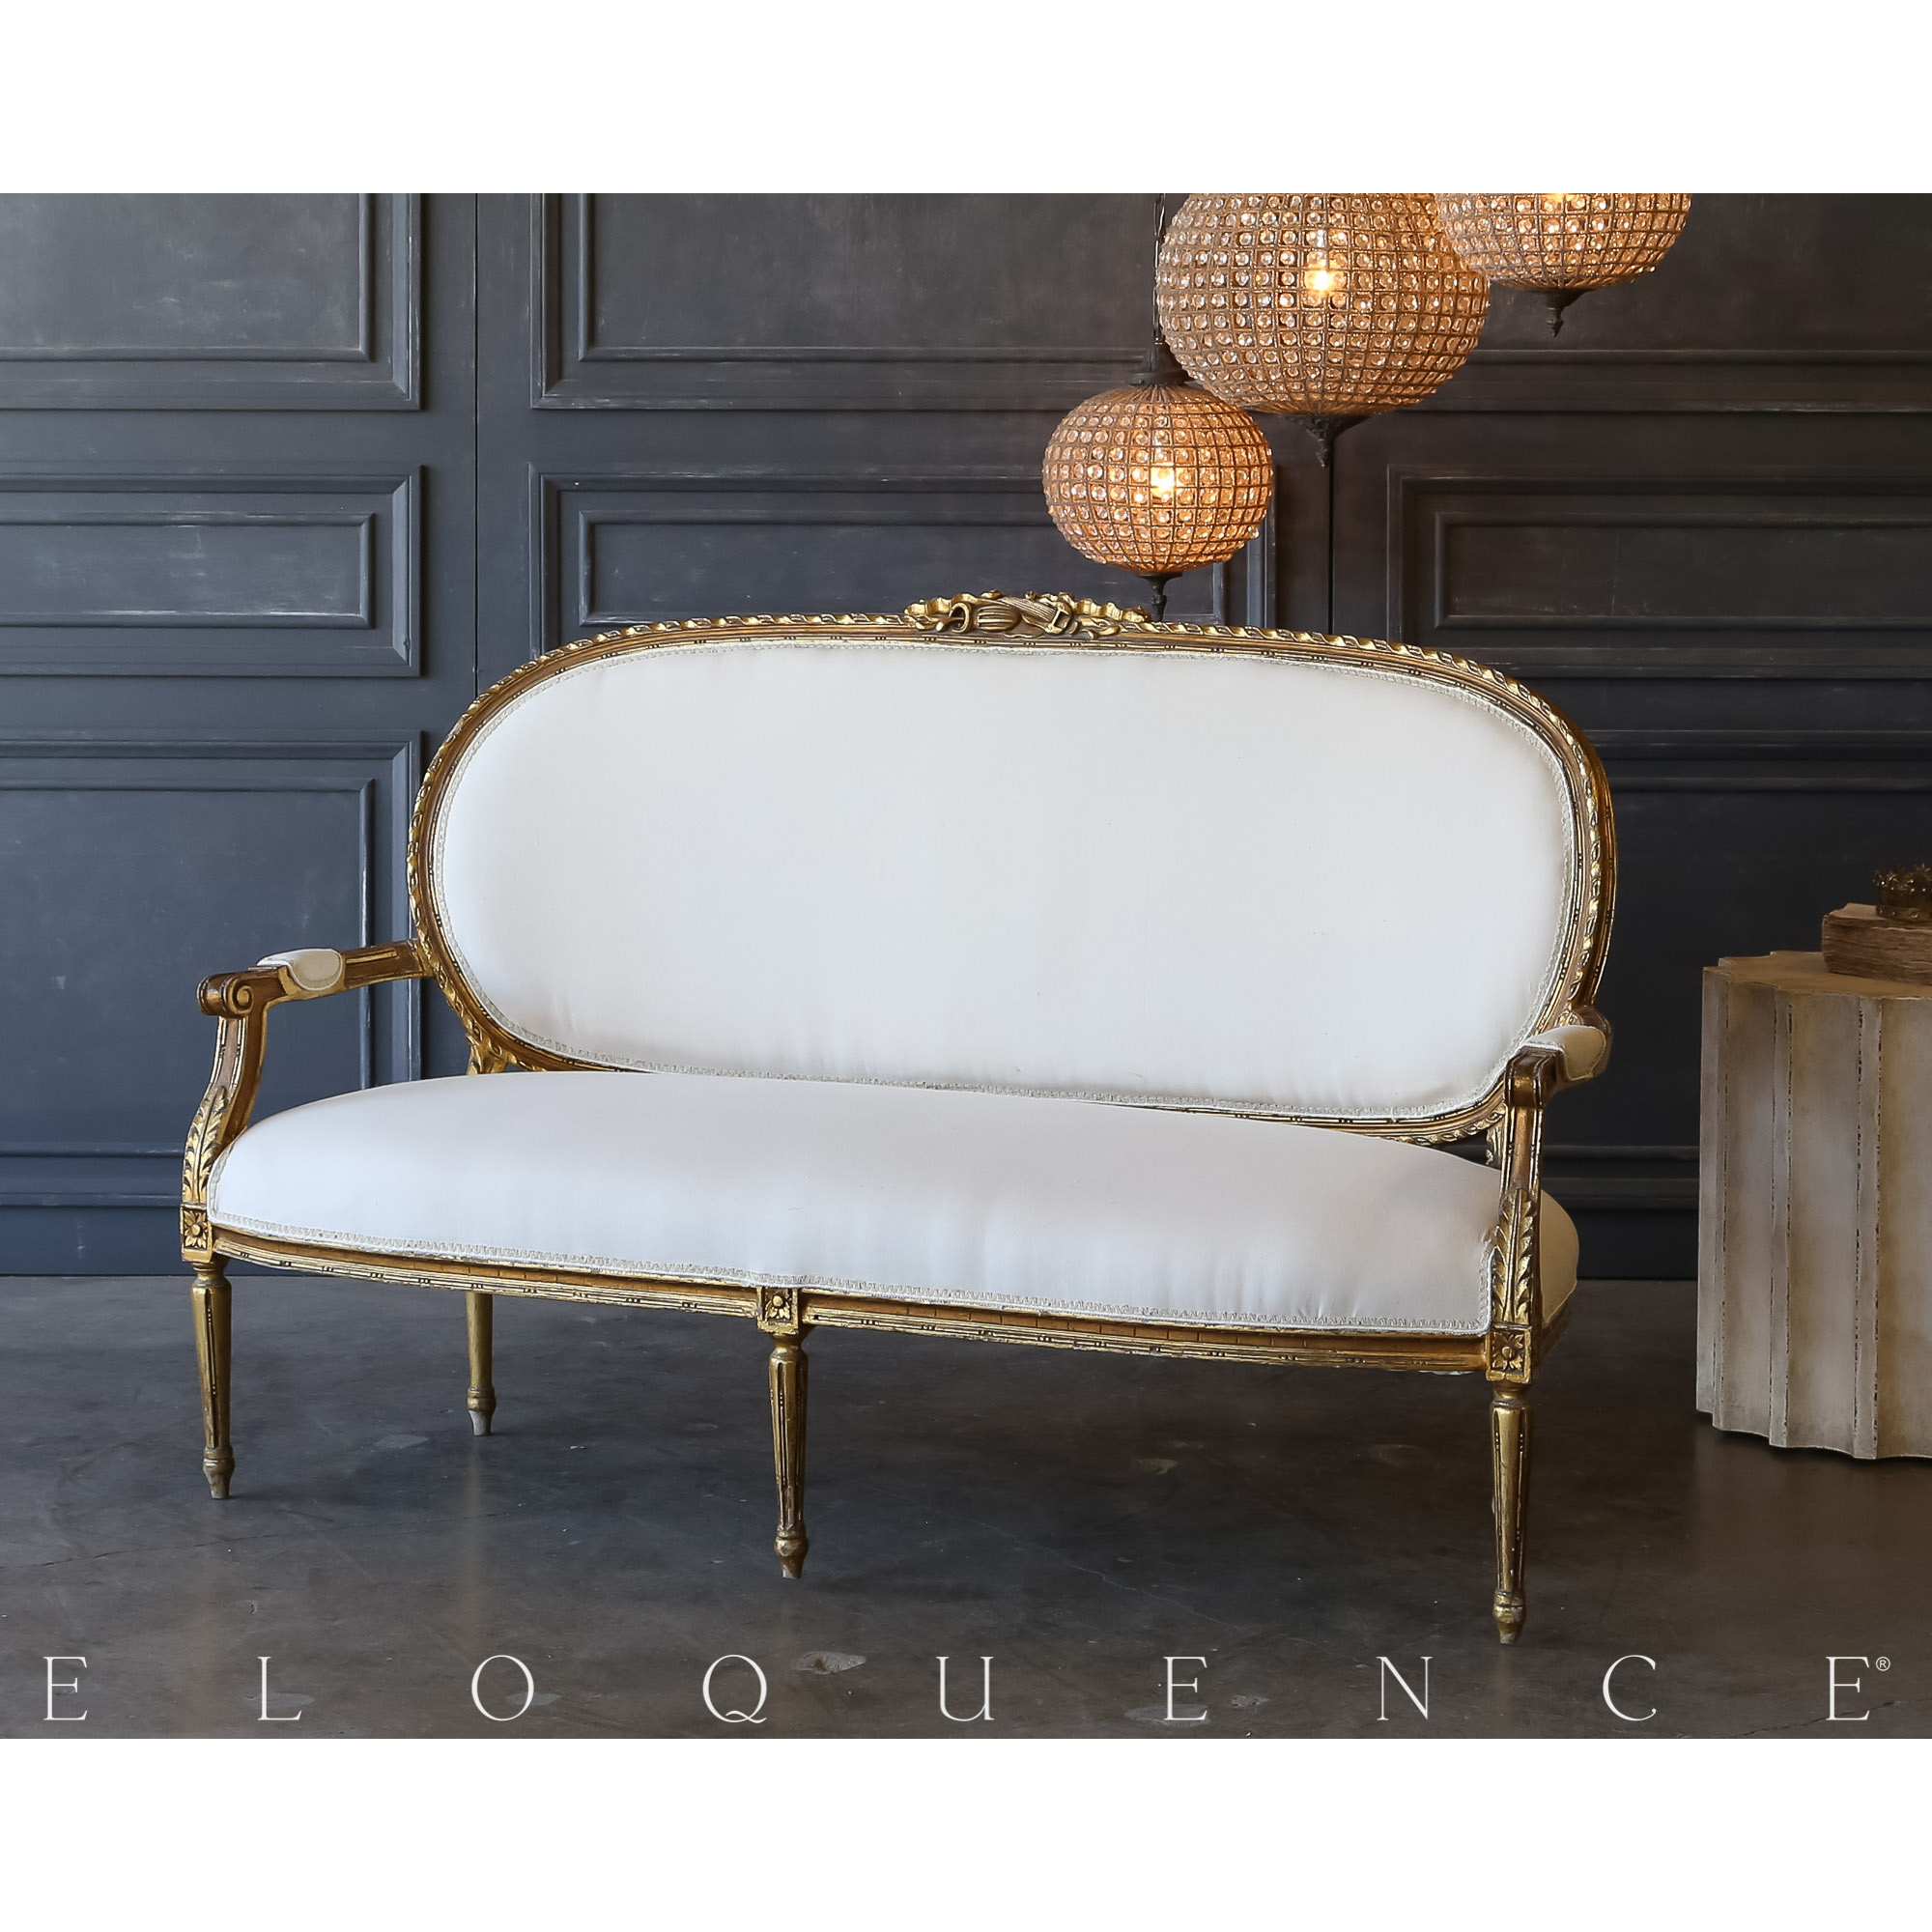 Eloquence® Vintage Gold Oval Settee: 1940